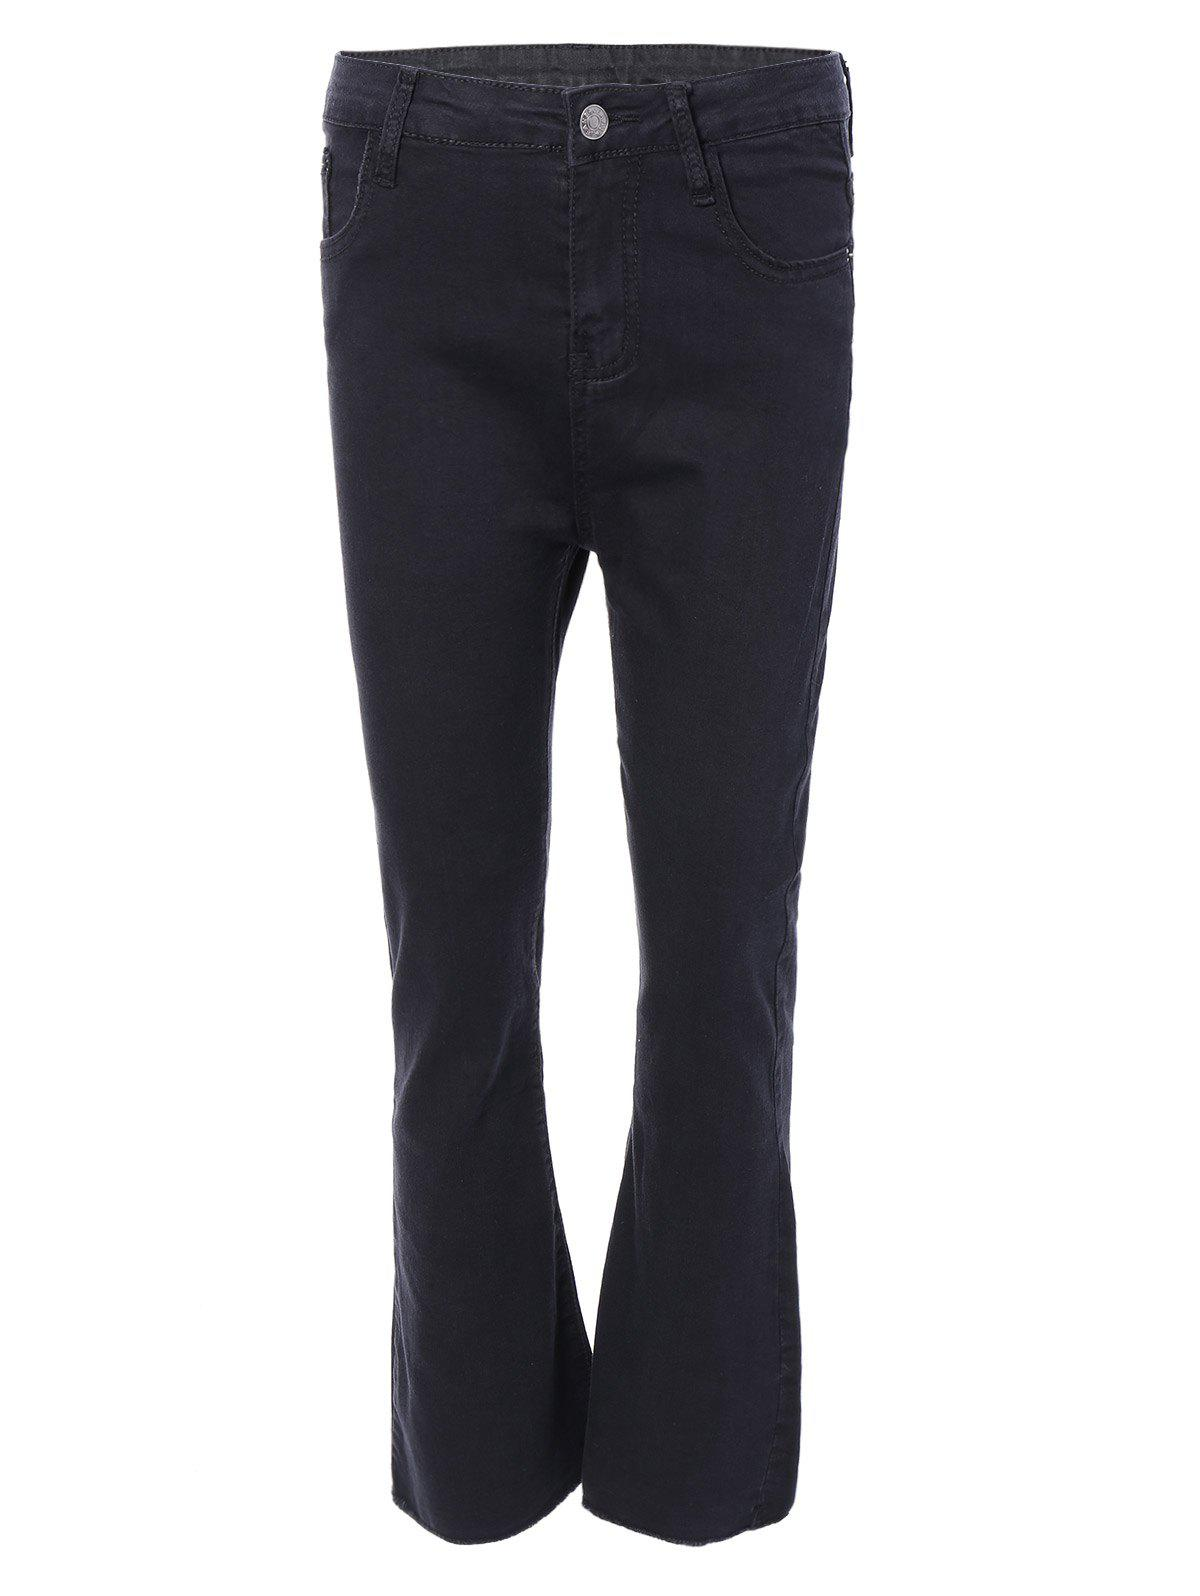 Chic Zippered Bootcut Jeans